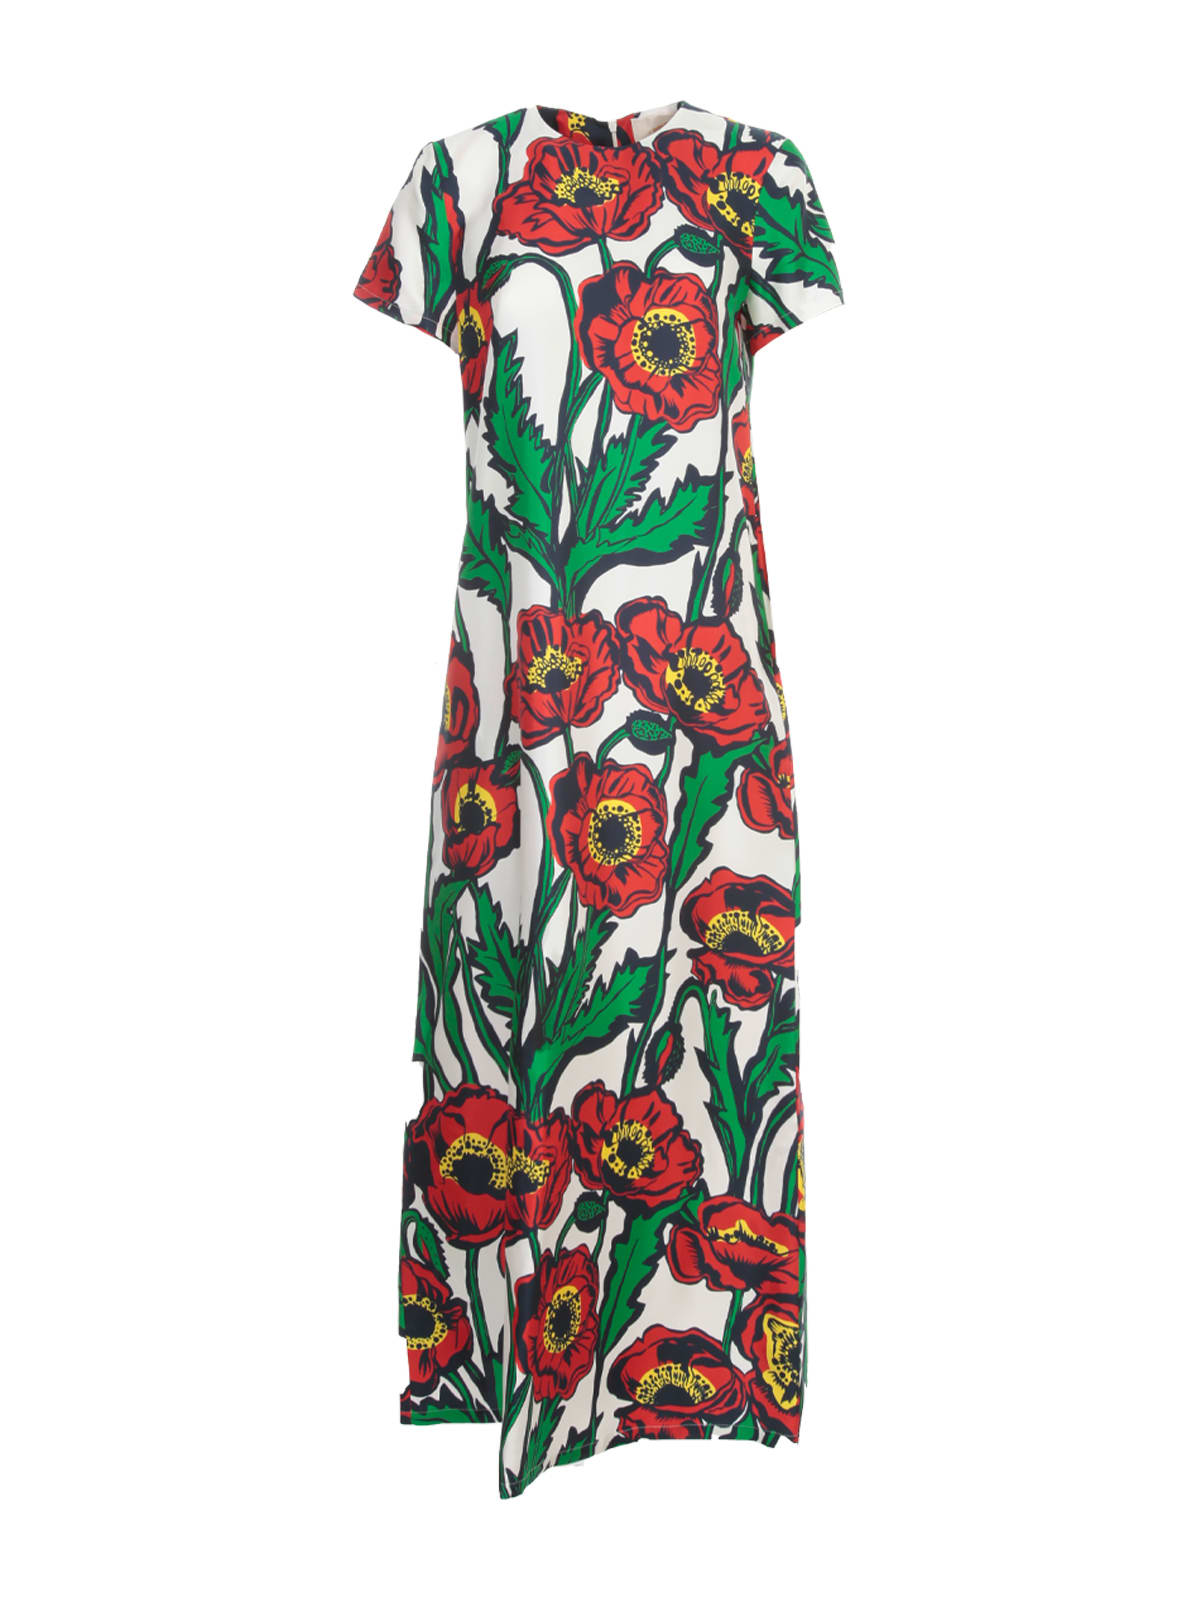 La DoubleJ Swing Long Dress S/s Crew Neck Fantasy